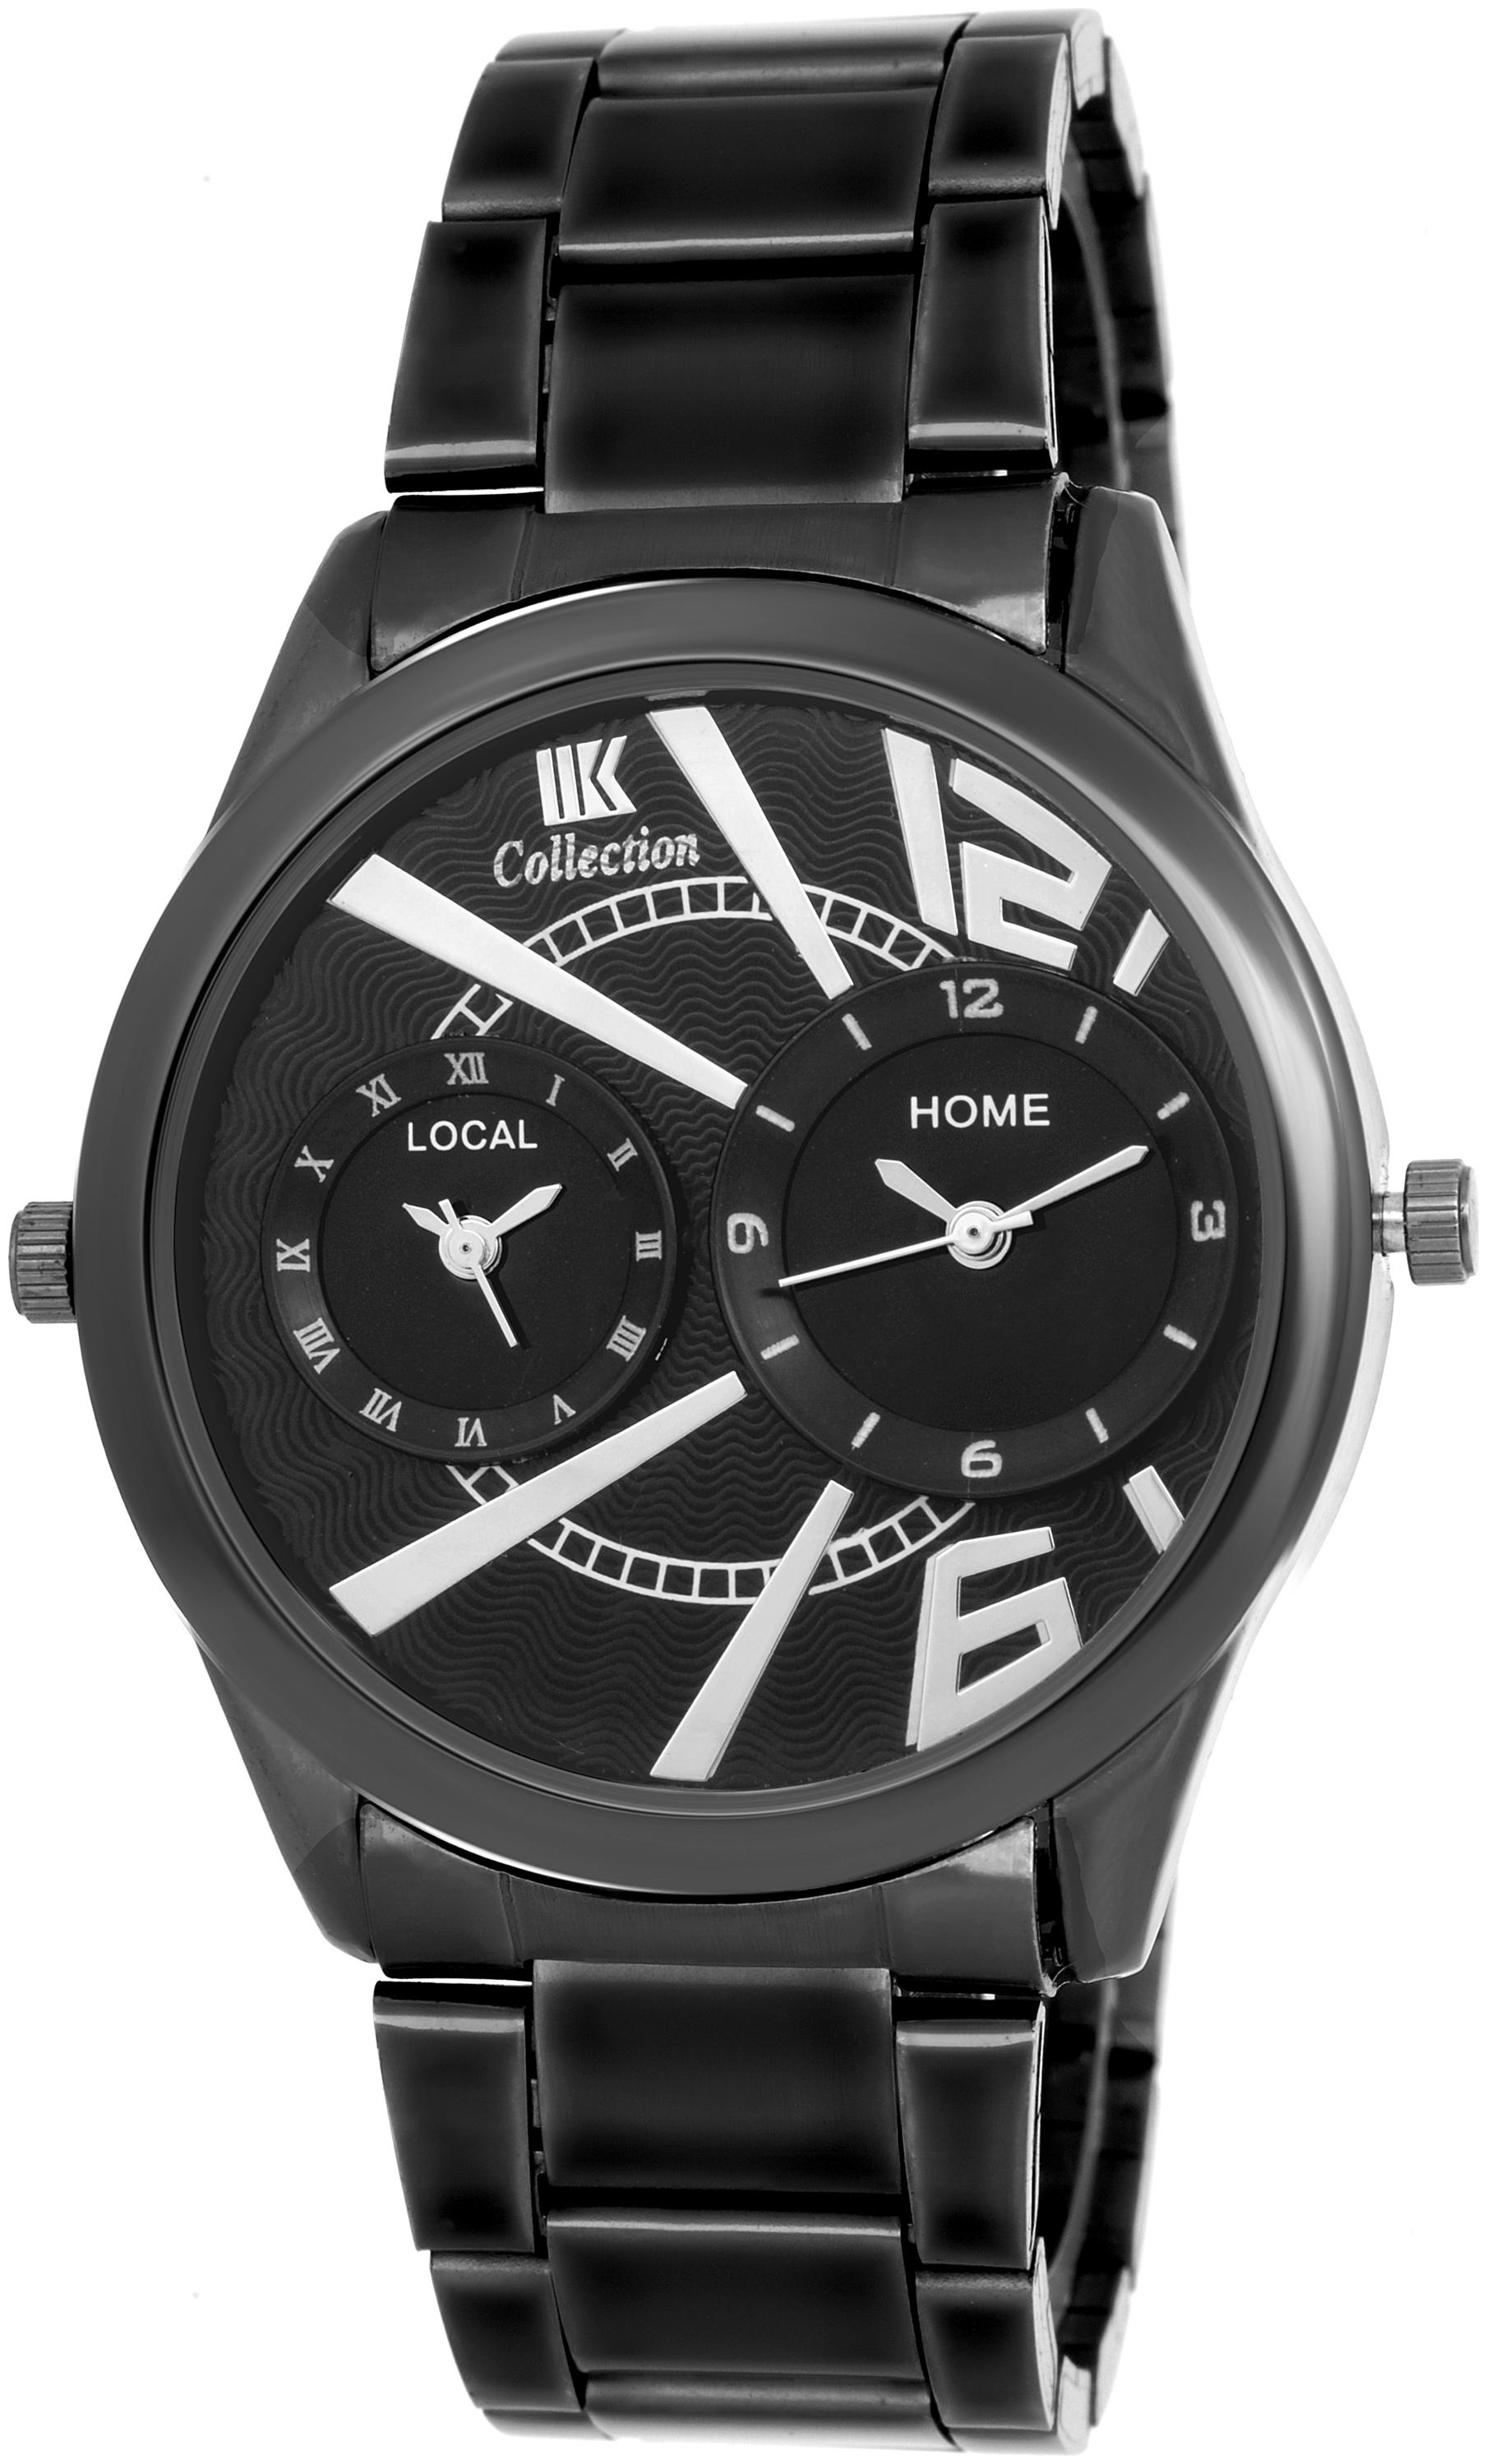 IIK Collection Black Dial Analog Wrist Watch For Men  IIK 087M  by Kapil Times